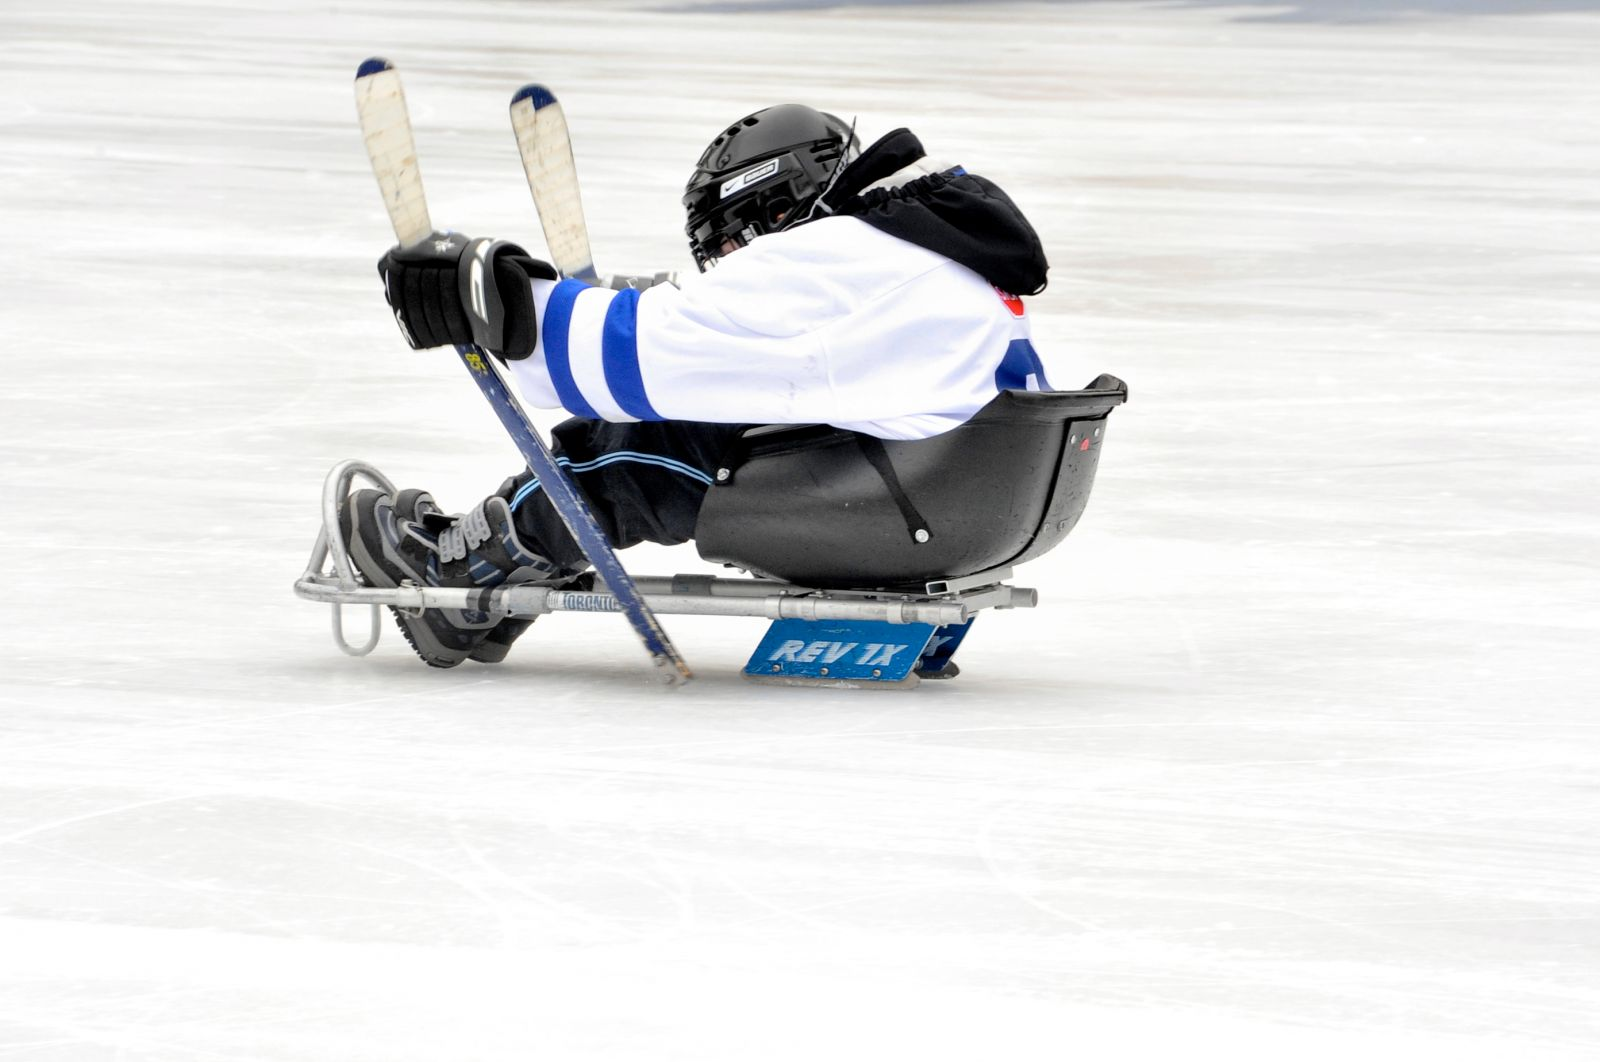 Photo of sledge hockey at Nathan Phillips Square (Source: City of Toronto Flickr)